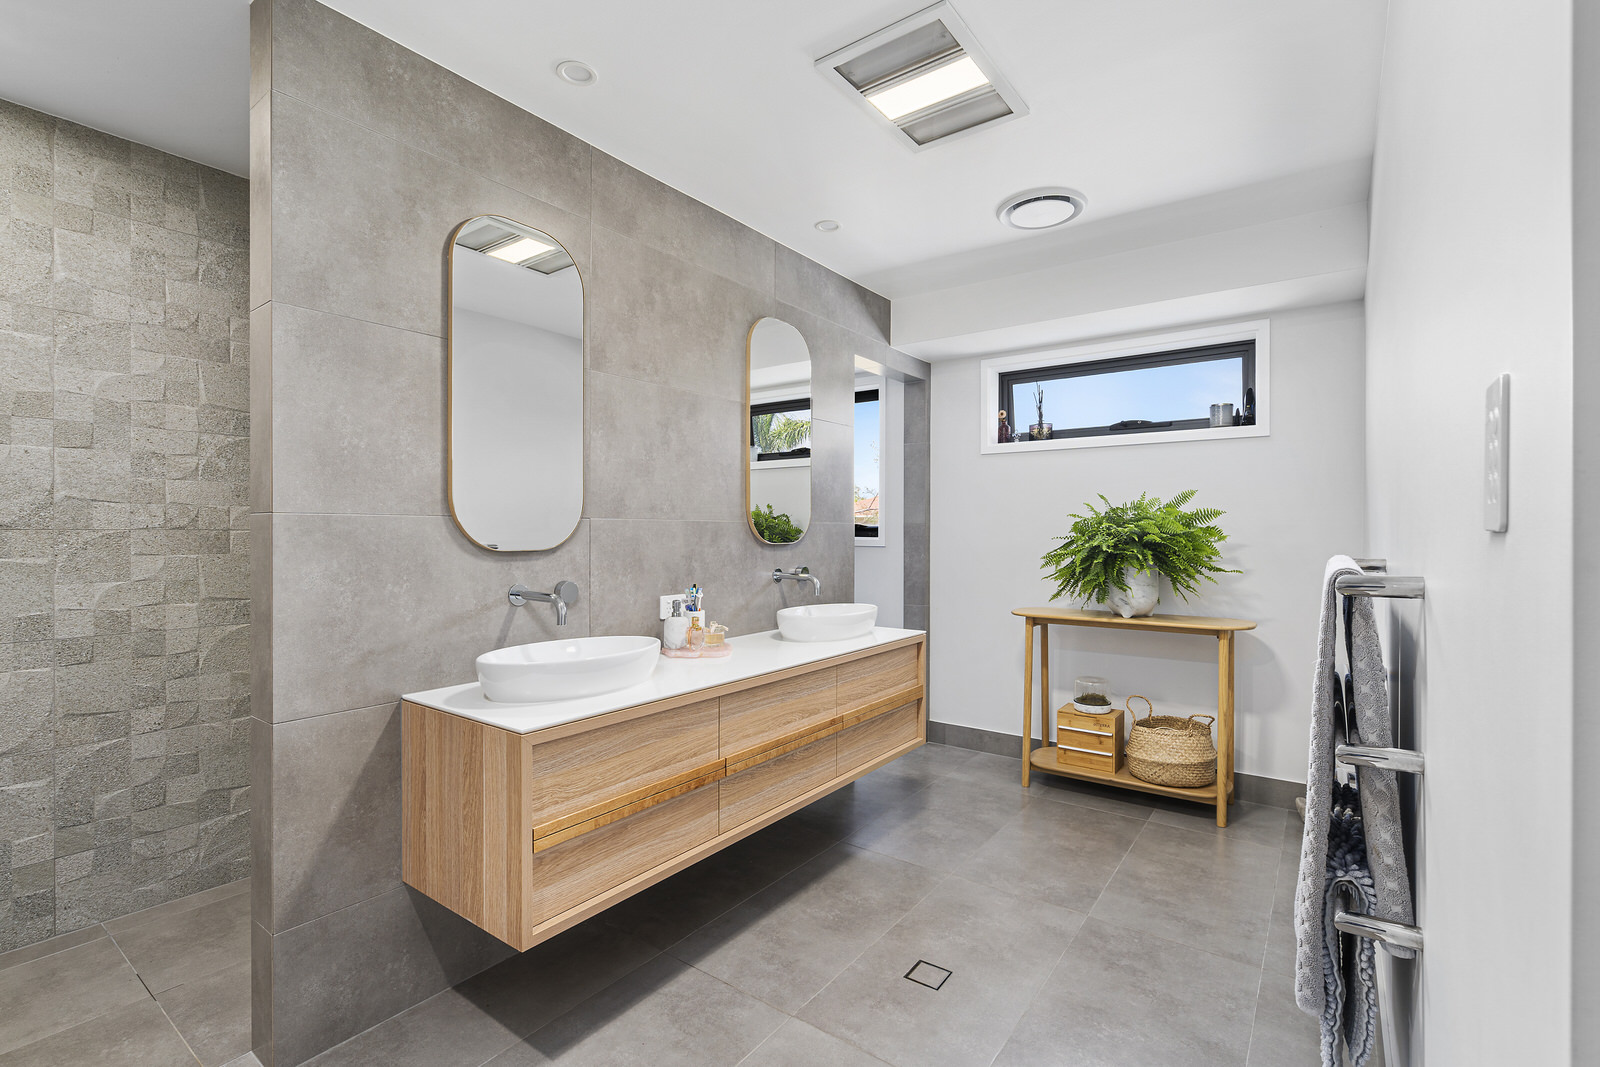 bathroom renovation modern design with grey, white and wood finishes